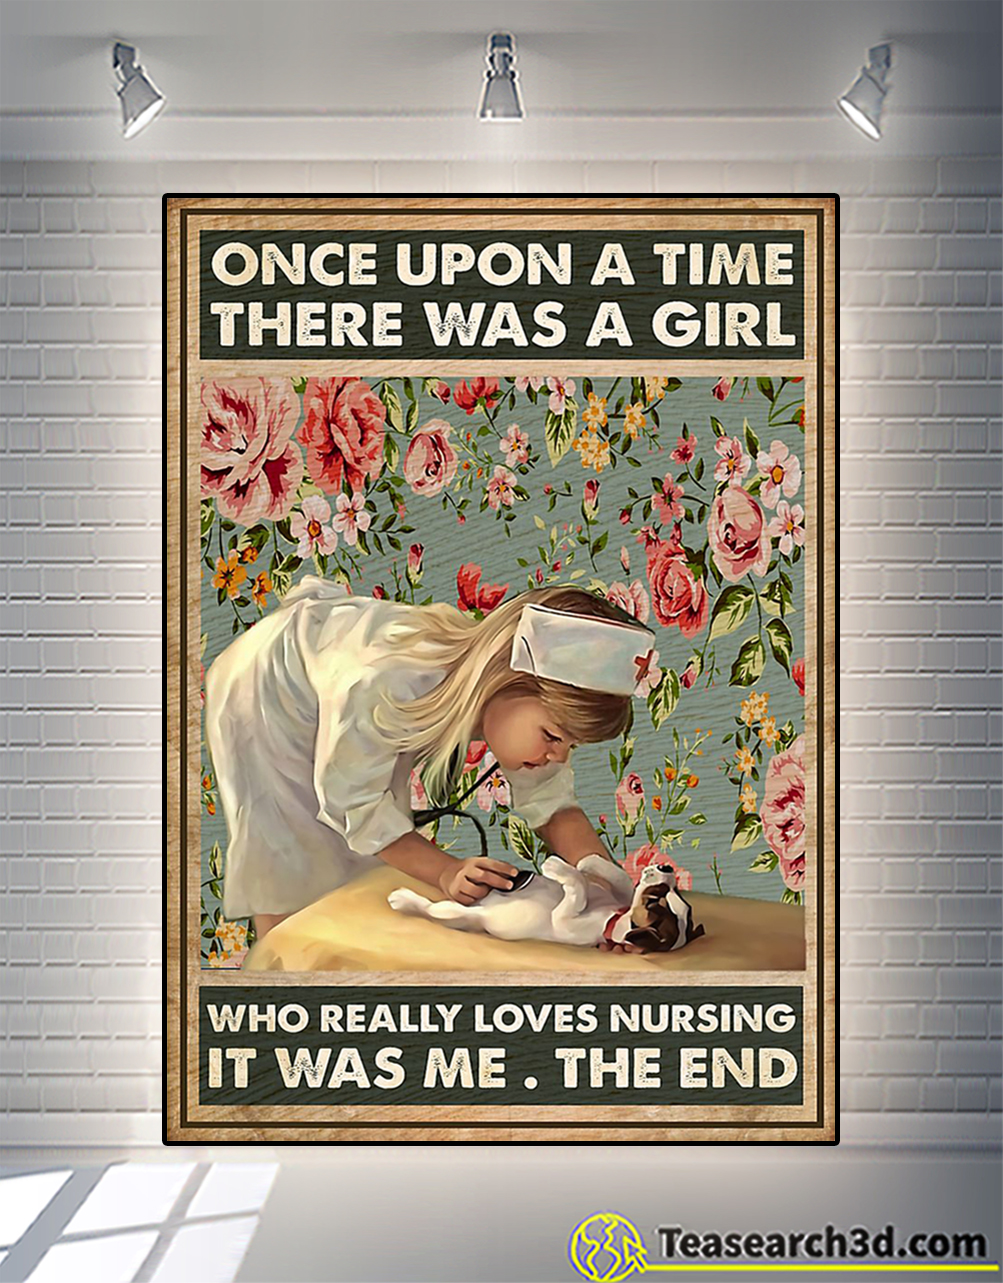 Once upon a time there was a girl who really loves nursing poster